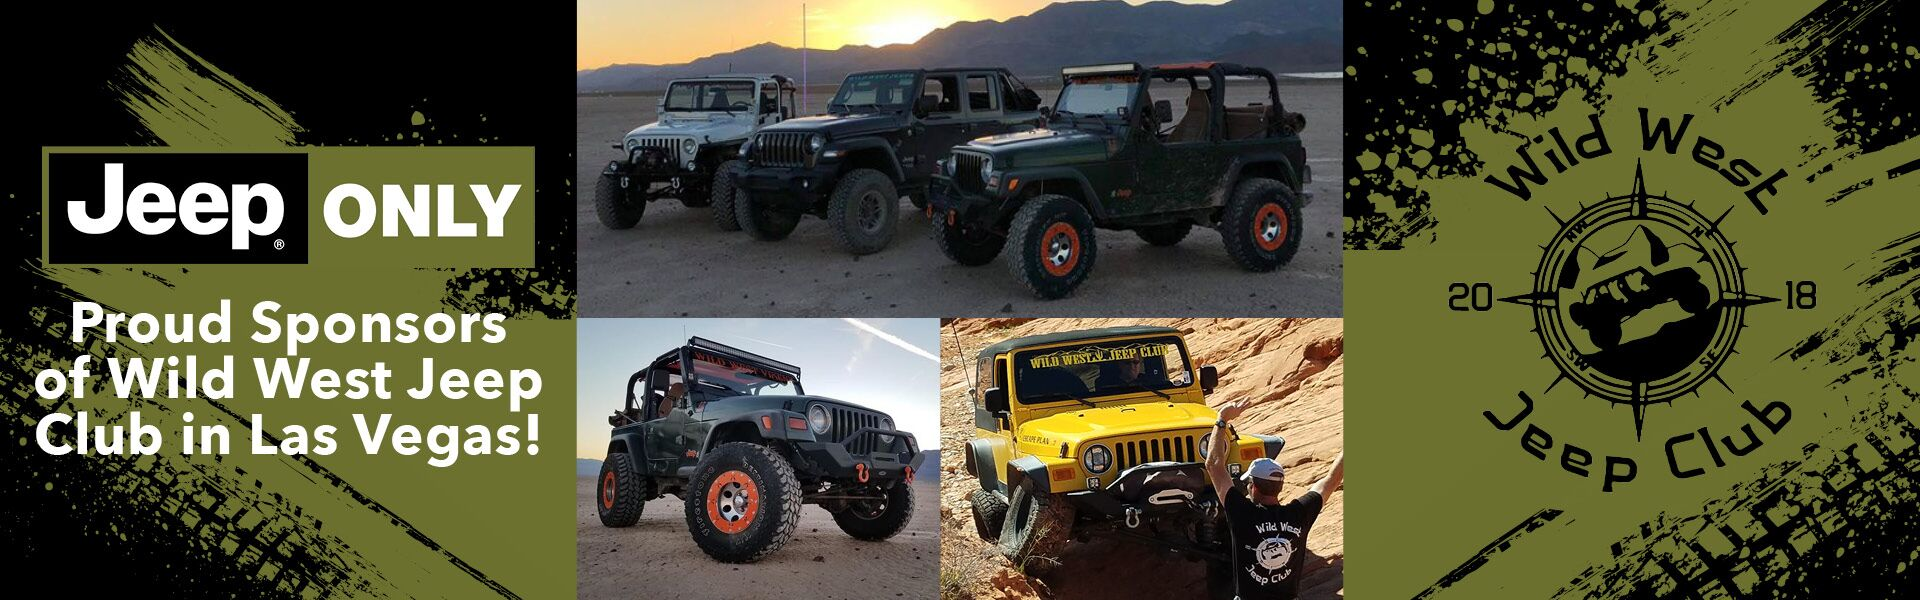 Jeep Dealership Las Vegas Nv Used Cars Jeep Only